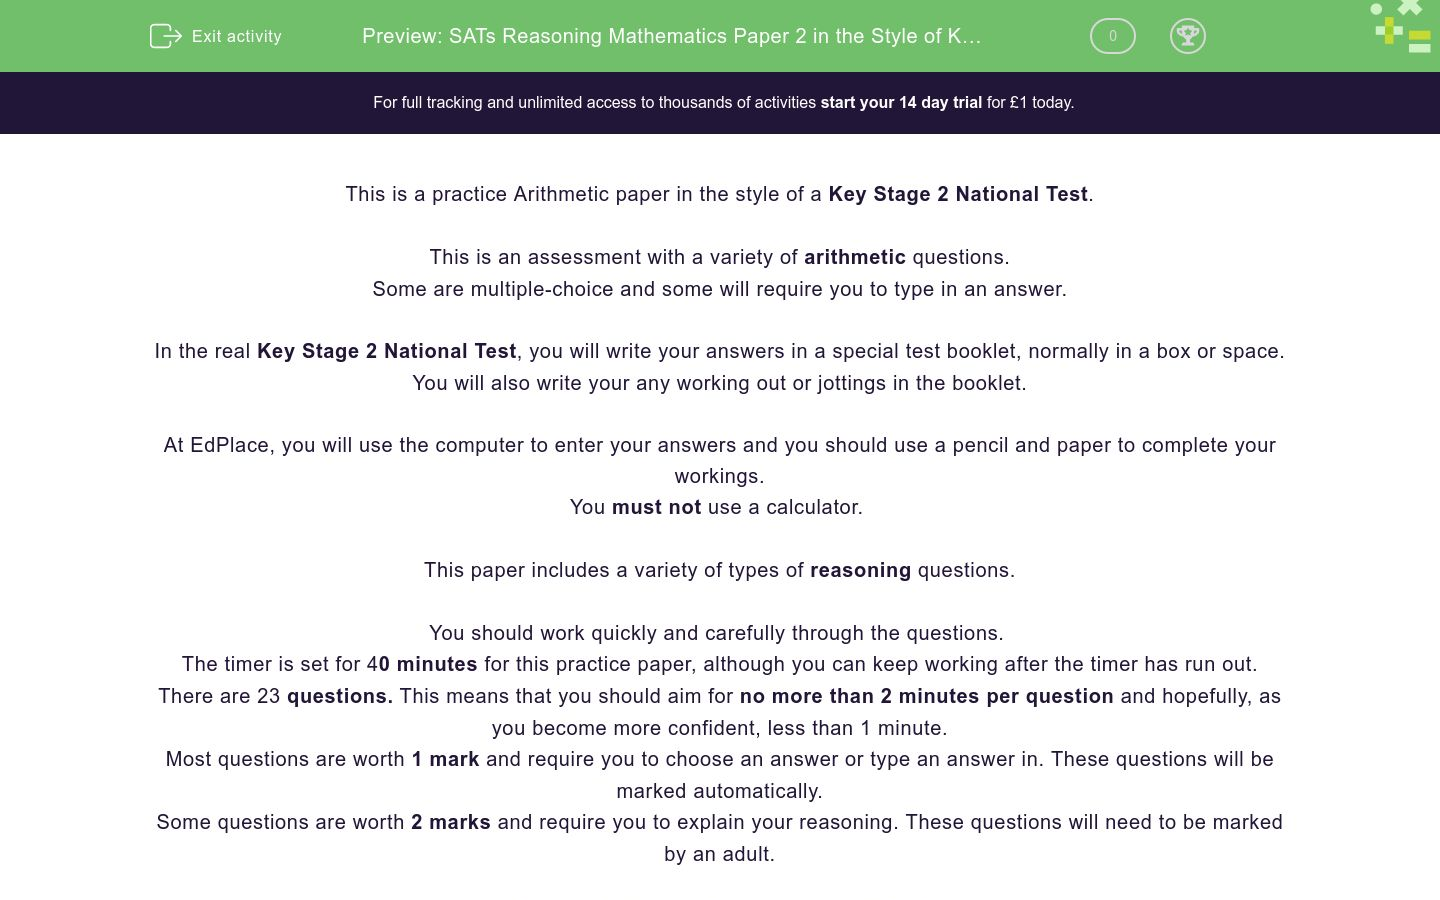 'Reasoning Mathematics Paper 2 in the Style of Key Stage 2 National Tests' worksheet